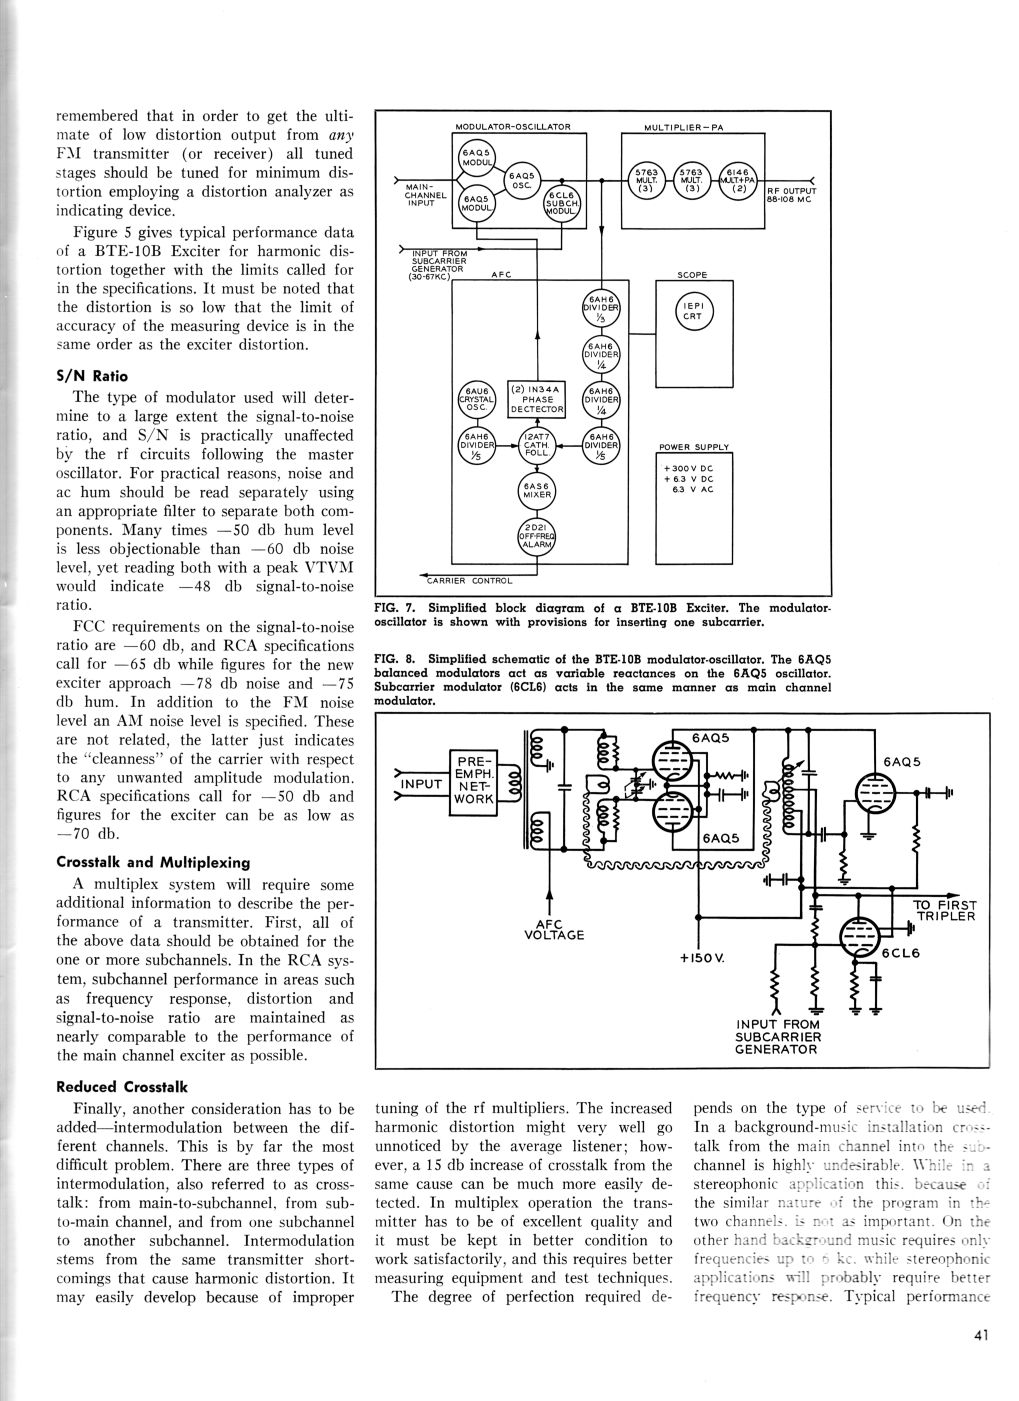 RCA BTE-10B Direct FM Exciter, page 4